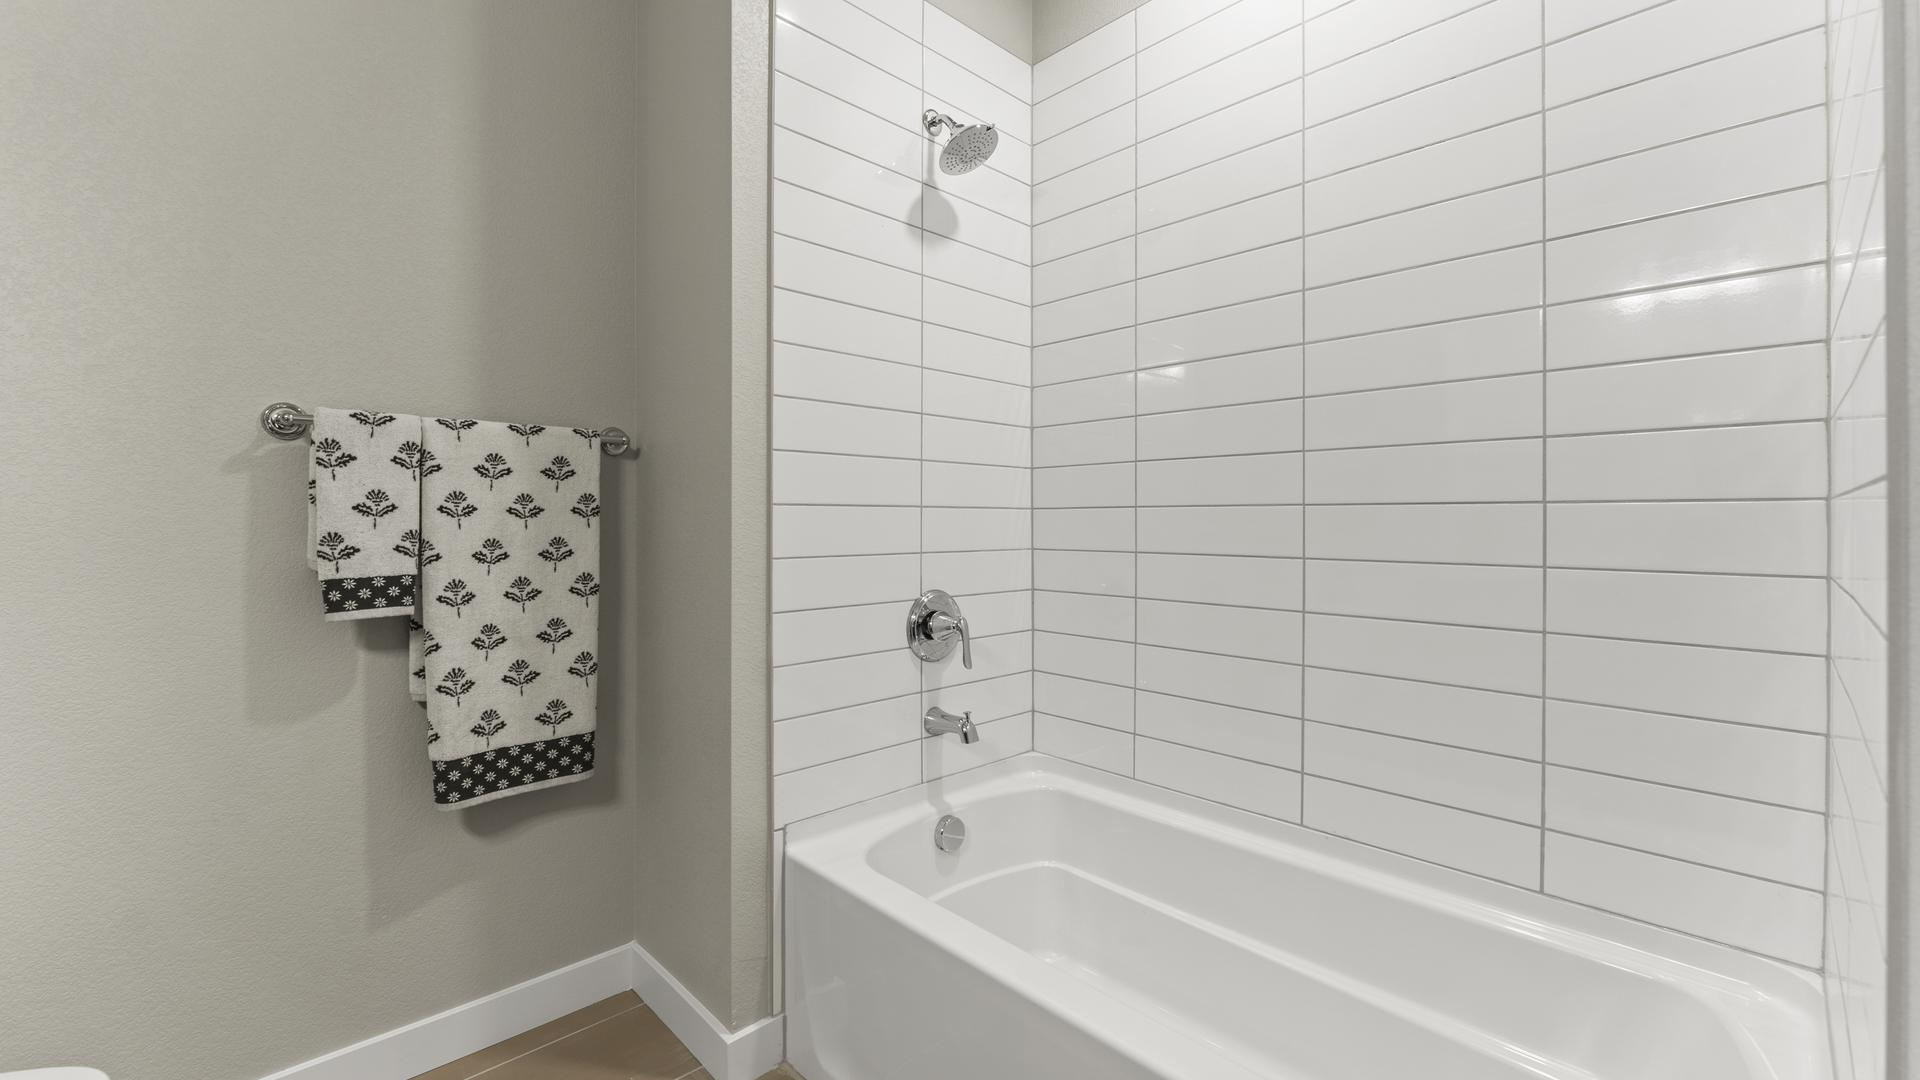 Bath 2 - Not Actual Home - Finishes Will Vary